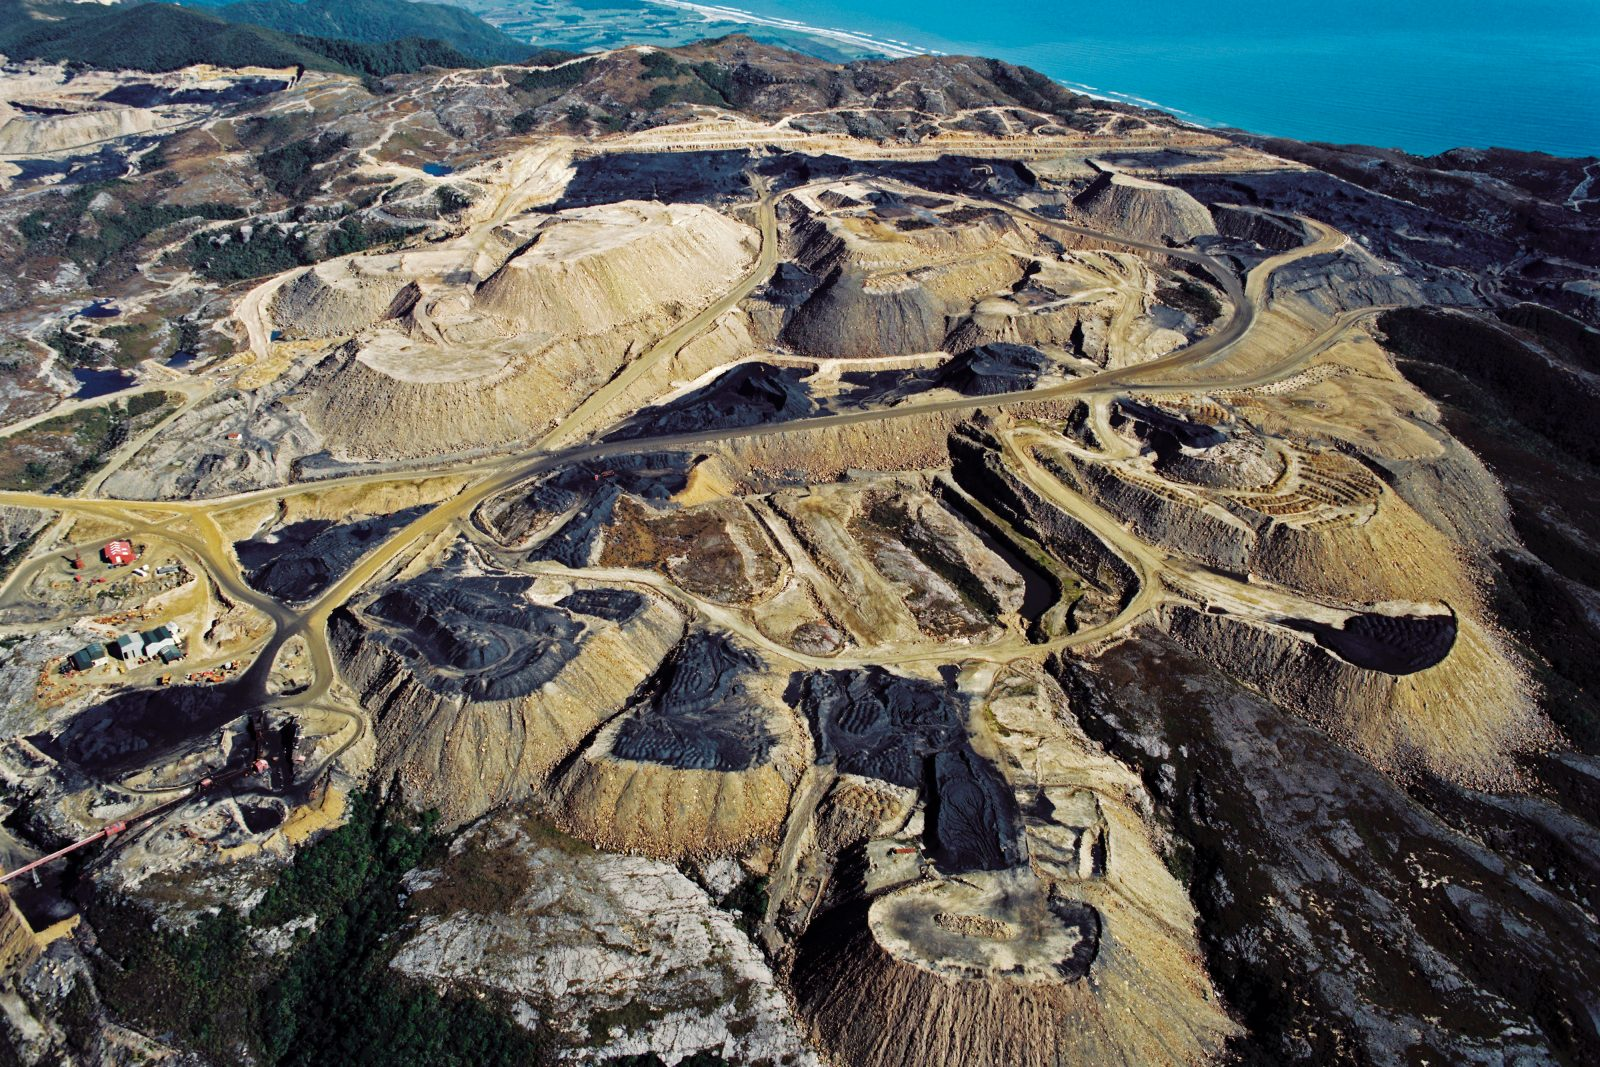 Two million tonnes of bituminous coal are mined each year from Stockton Plateau, New Zealand's largest opencast mine. Most of the coal is exported for steelmaking—as is coal from Denniston, which lies beyond the top left corner of this photograph, taken in 1998. The peaks on the ridgeline at top centre are part of the Mt Augustus massif, where a remnant population of the eponymous land snail was discovered 20 years later. The entire ridge has now been flattened.